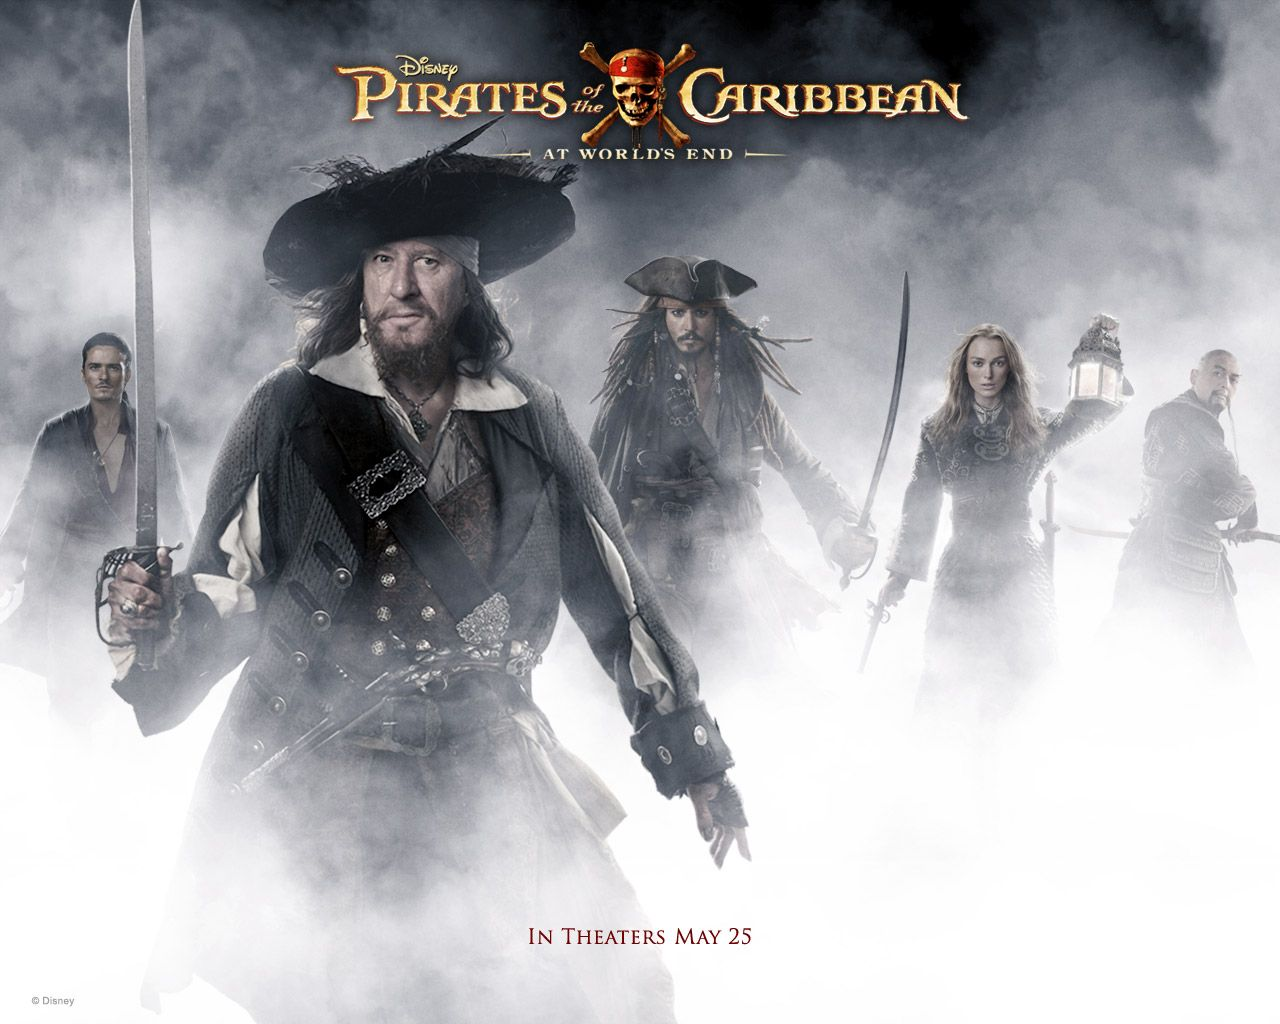 pirates of the caribbean barbossa - Google Search